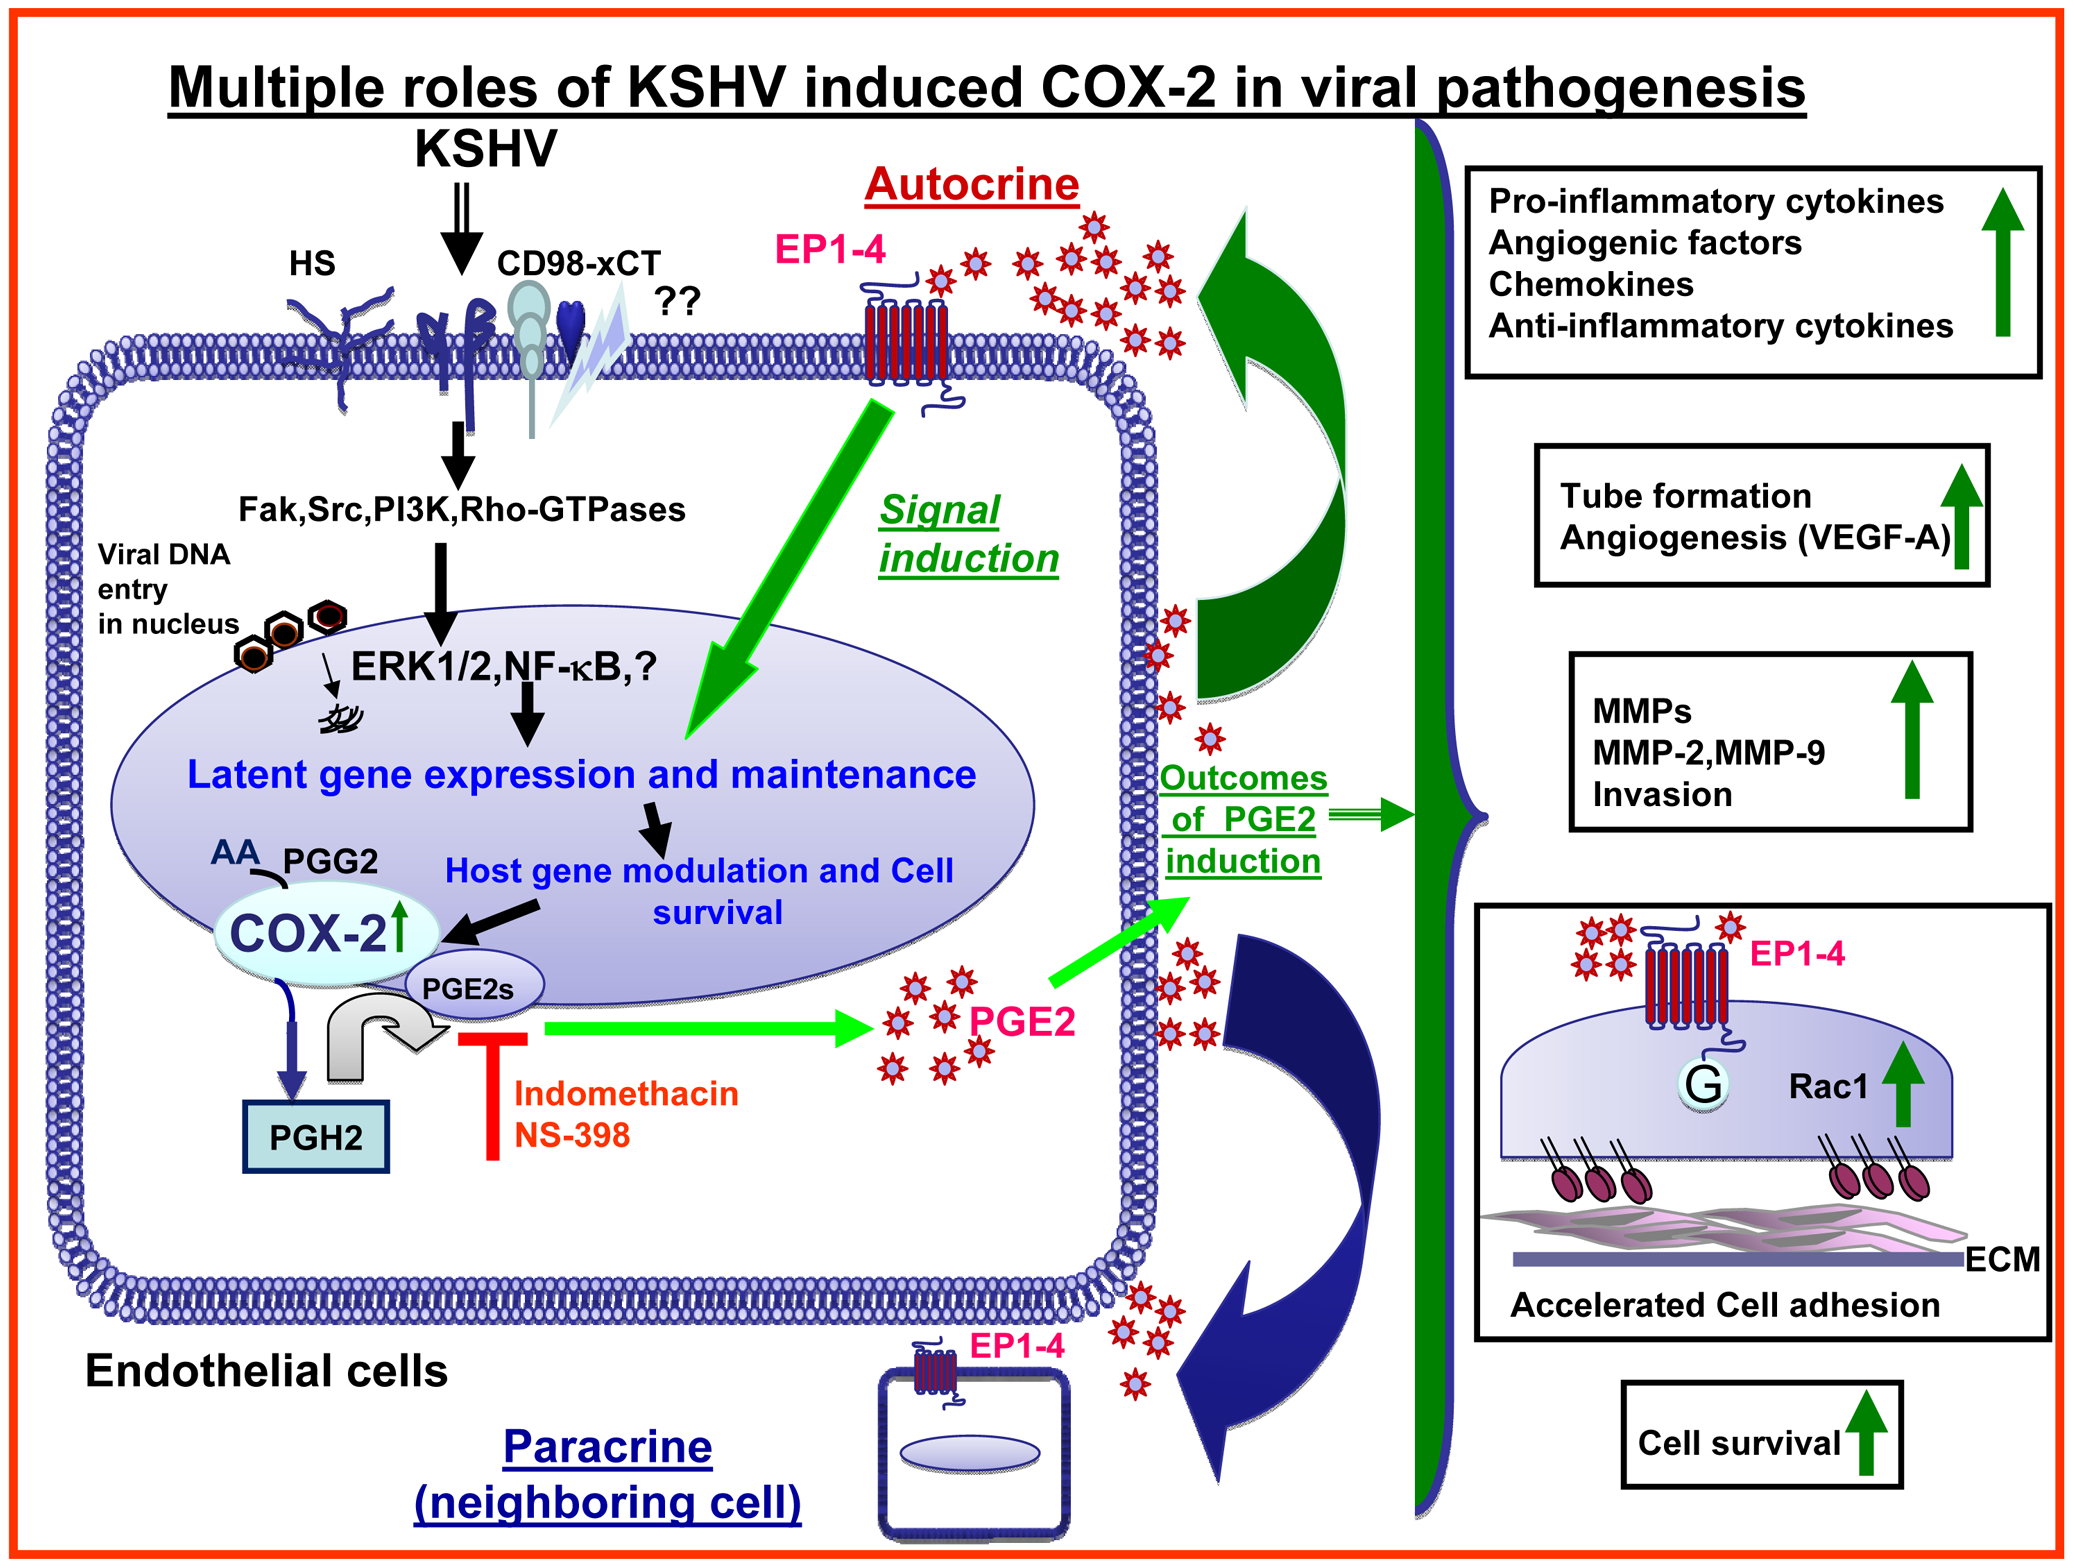 Schematic diagram depicting the multiple outcomes of KSHV induced COX-2 in endothelial cells, consequences and role in pathogenesis.